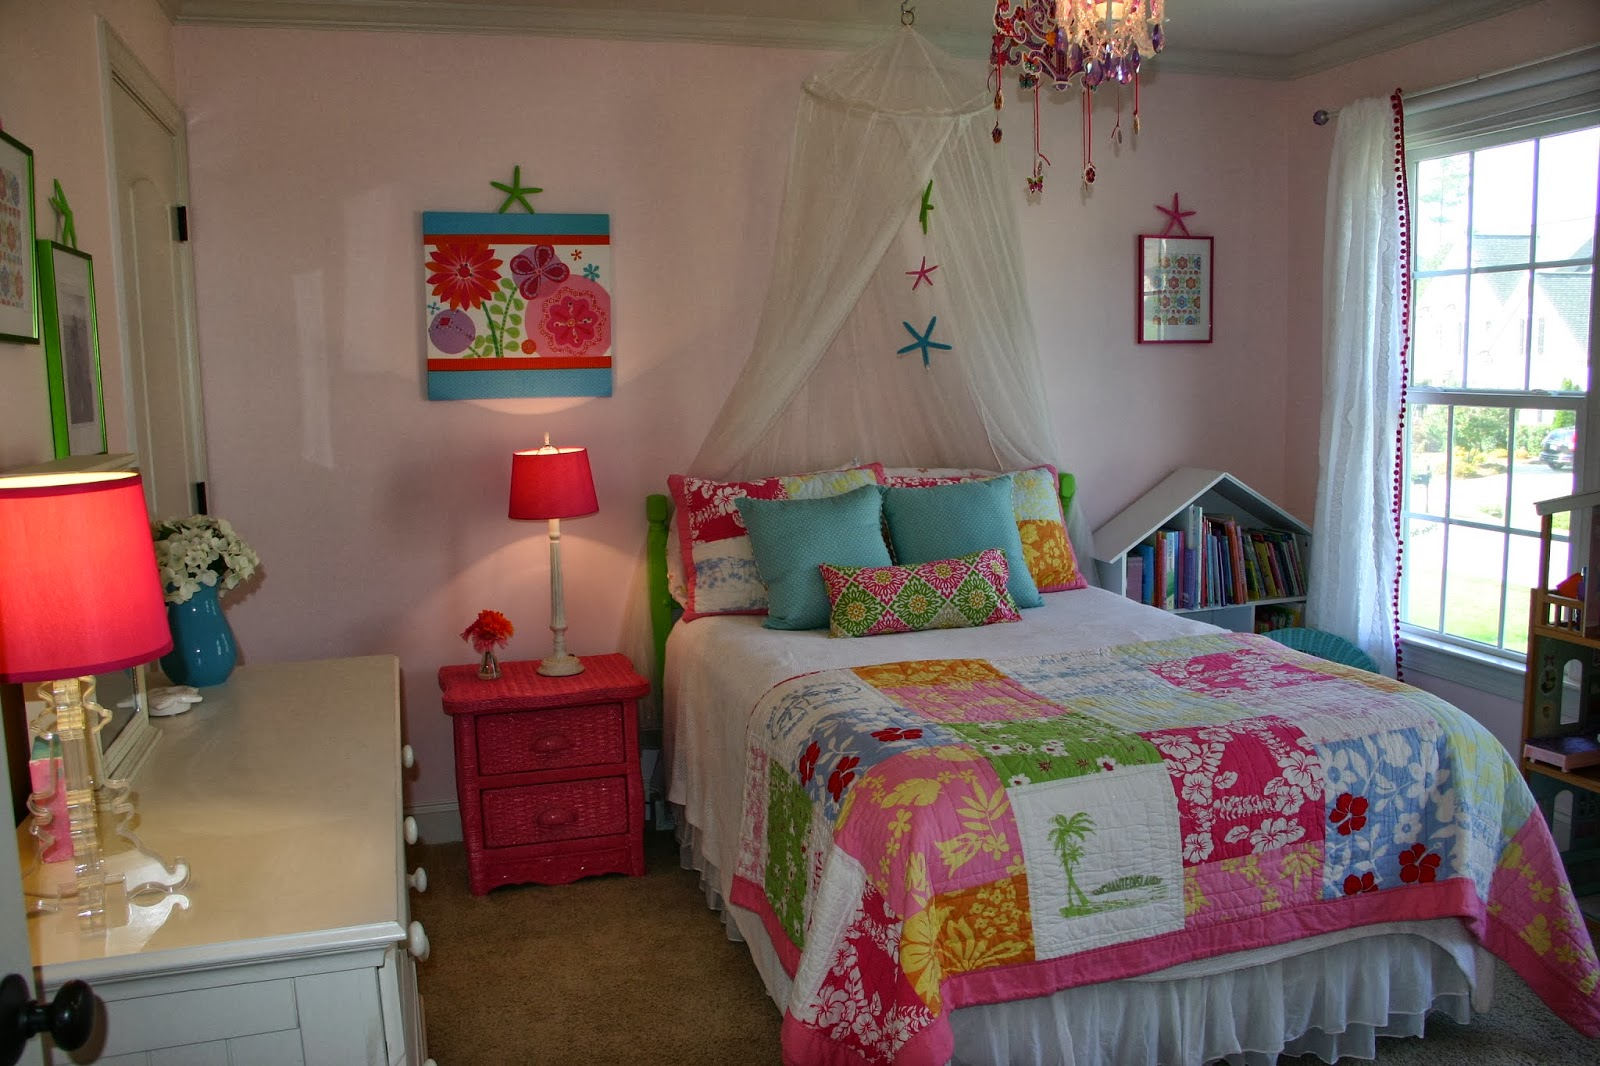 Cottage blue designs spiced up room for a sparkly girl for 8 year old girl bedroom